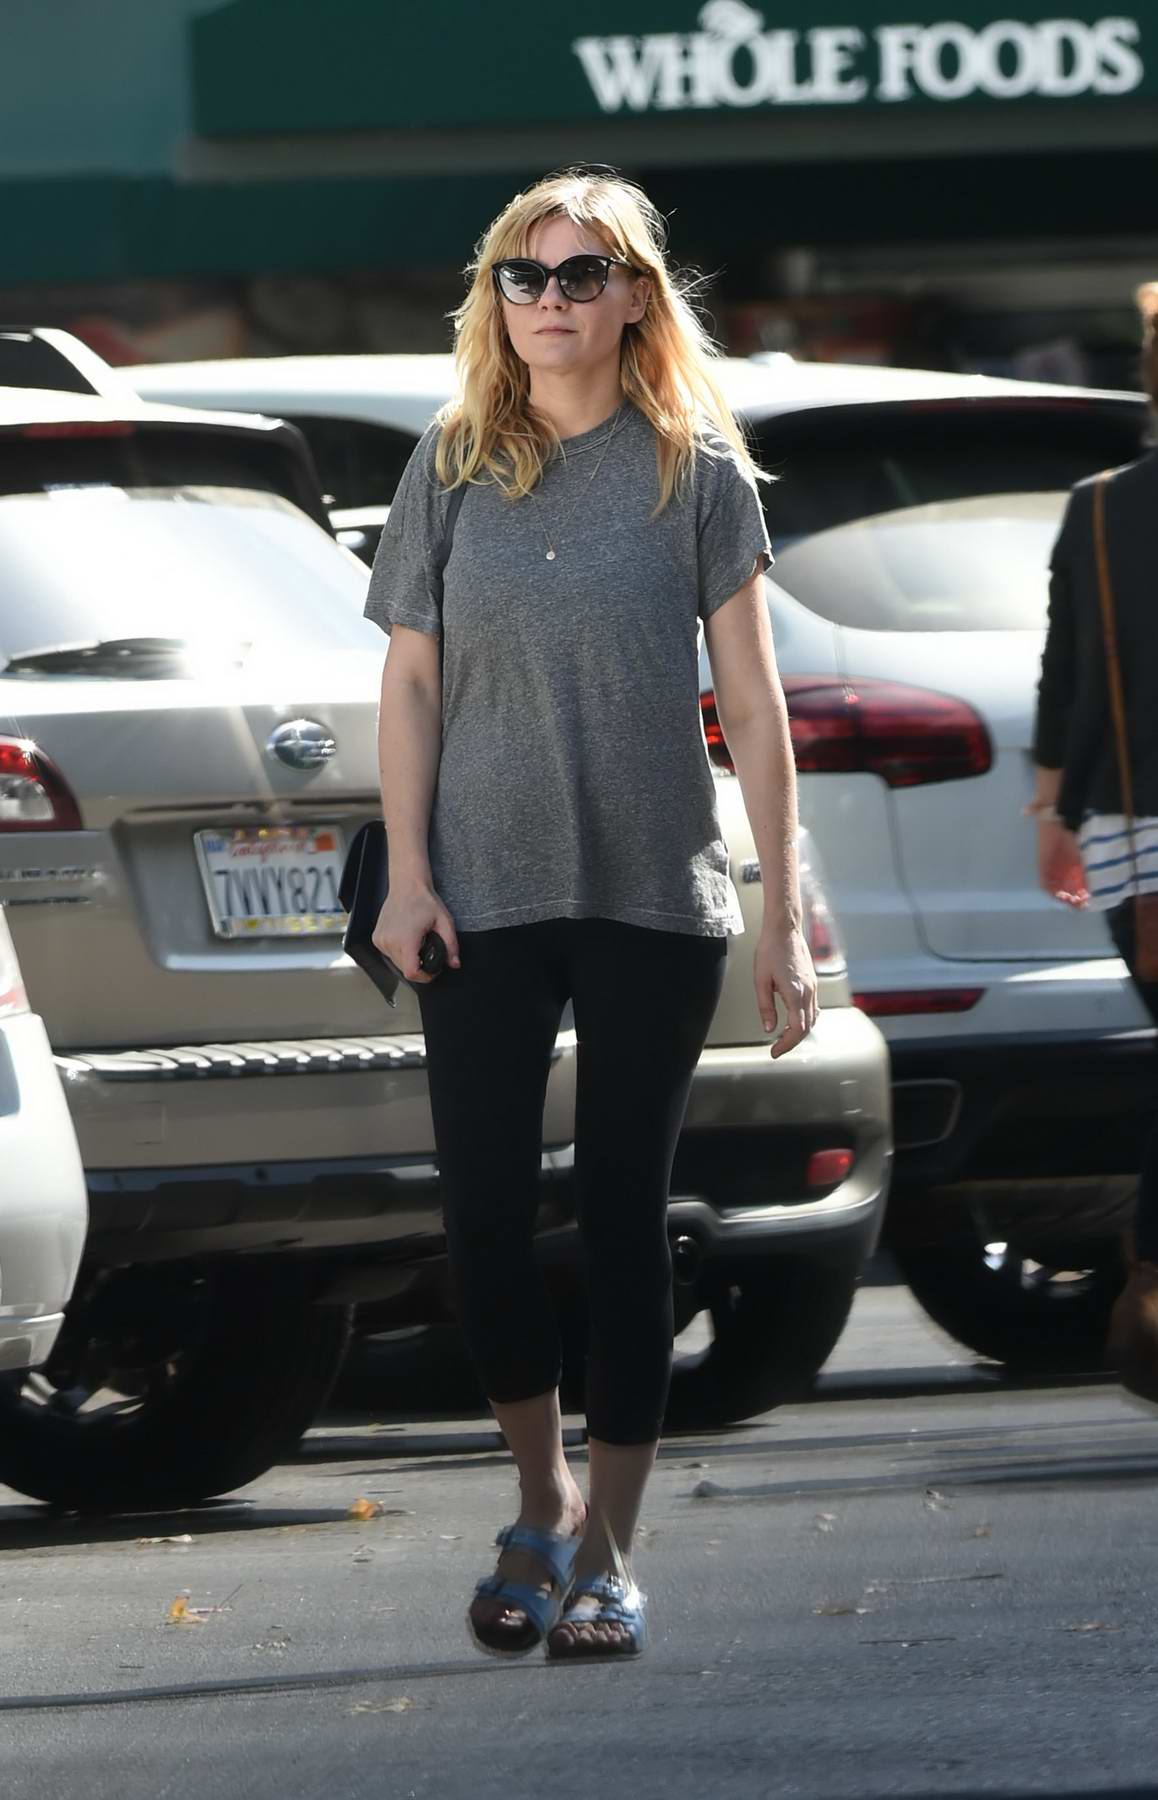 Kirsten Dunst and Jesse Plemons go grocery shopping together in Los Angeles